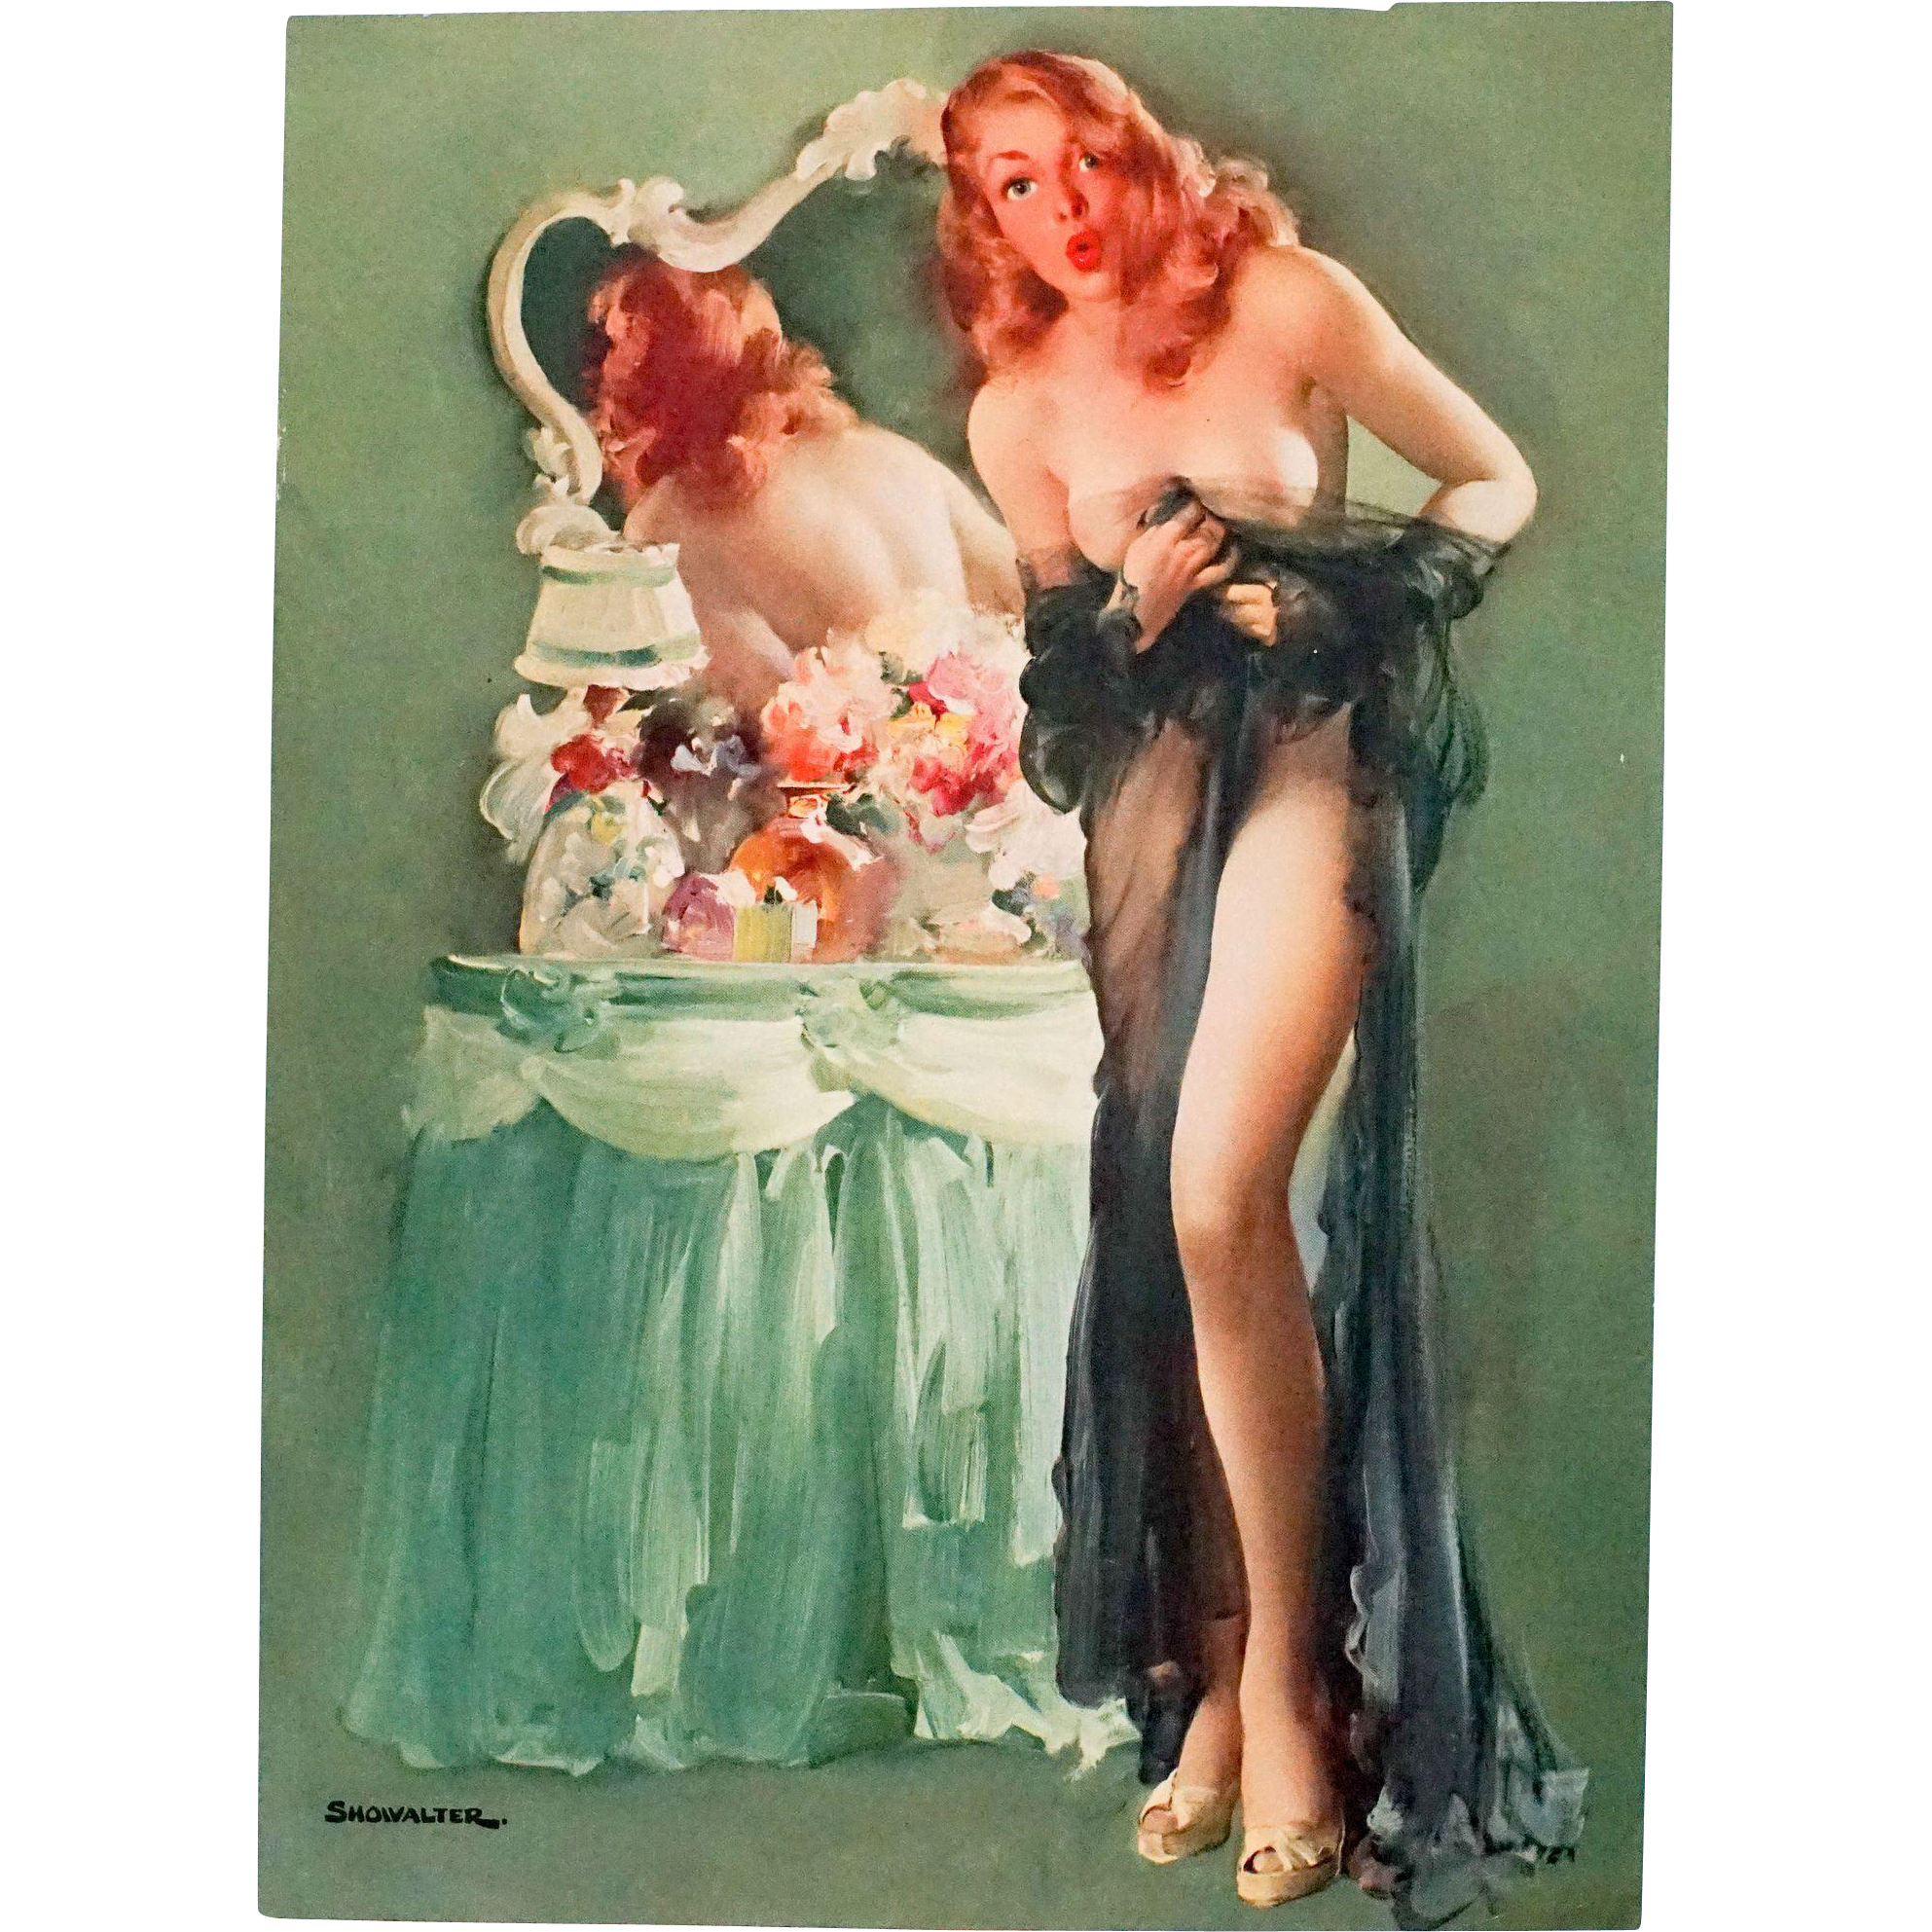 Wonderful Vintage ate 1940s/early 1950s Pinup, Sheer Surprise by Curtis Showalter